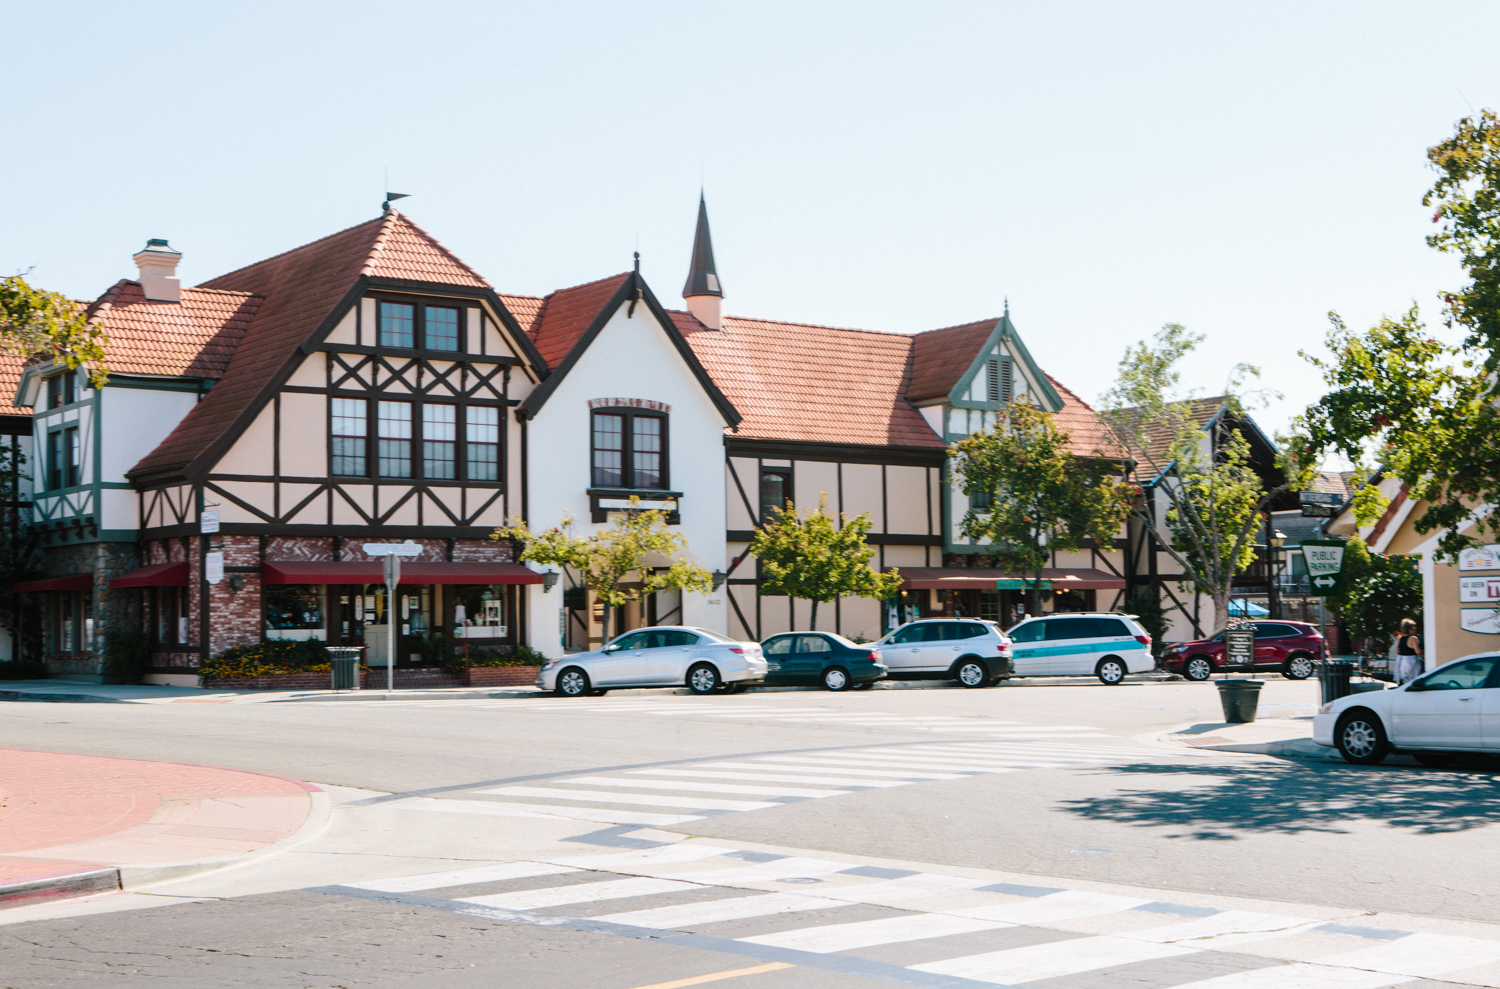 The quaint streets of downtown Solvang, California.